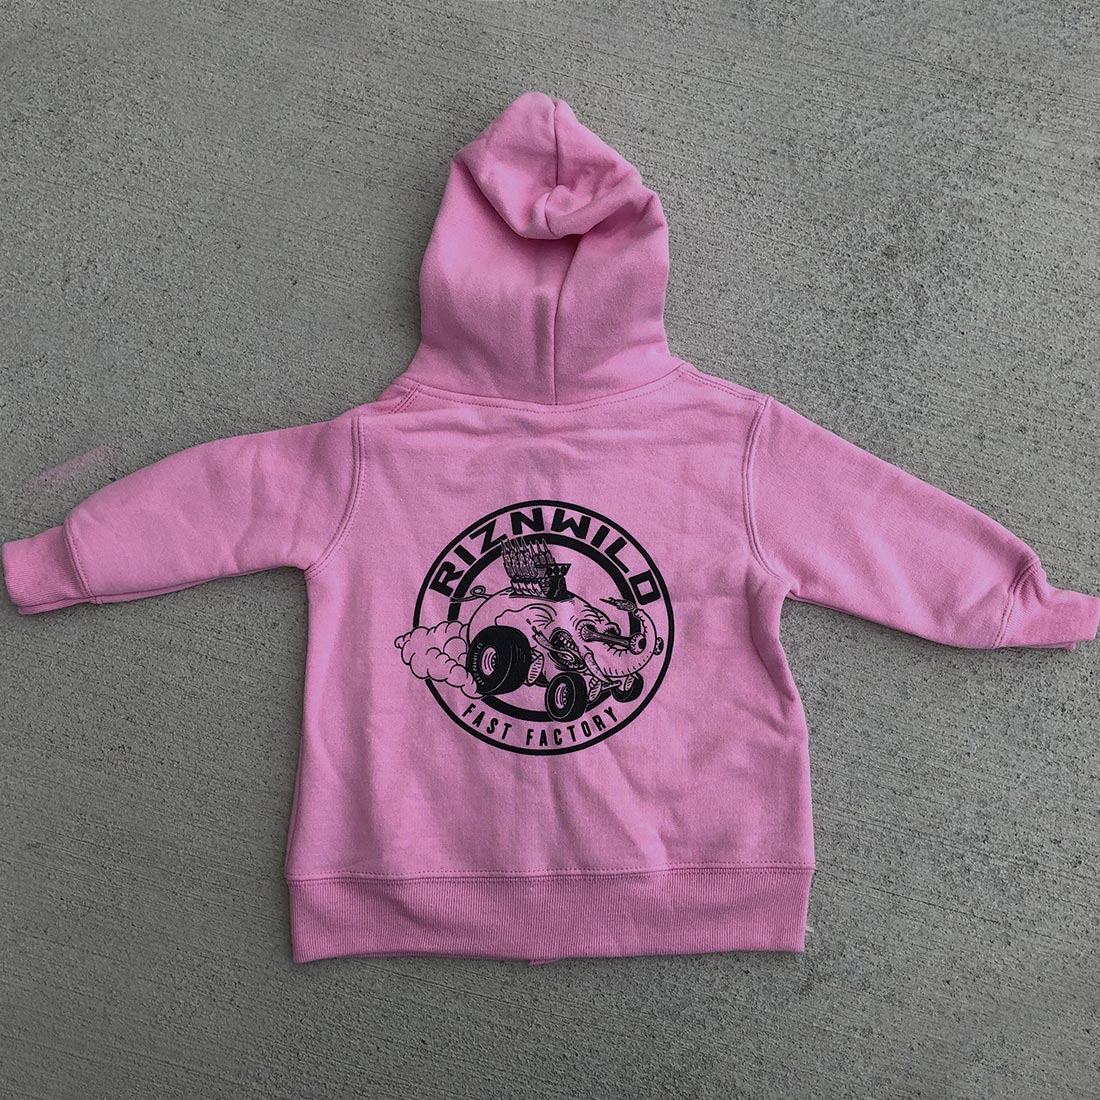 RIZNWILD | Baby girl's pink zip up sweatshirt with elephant on back